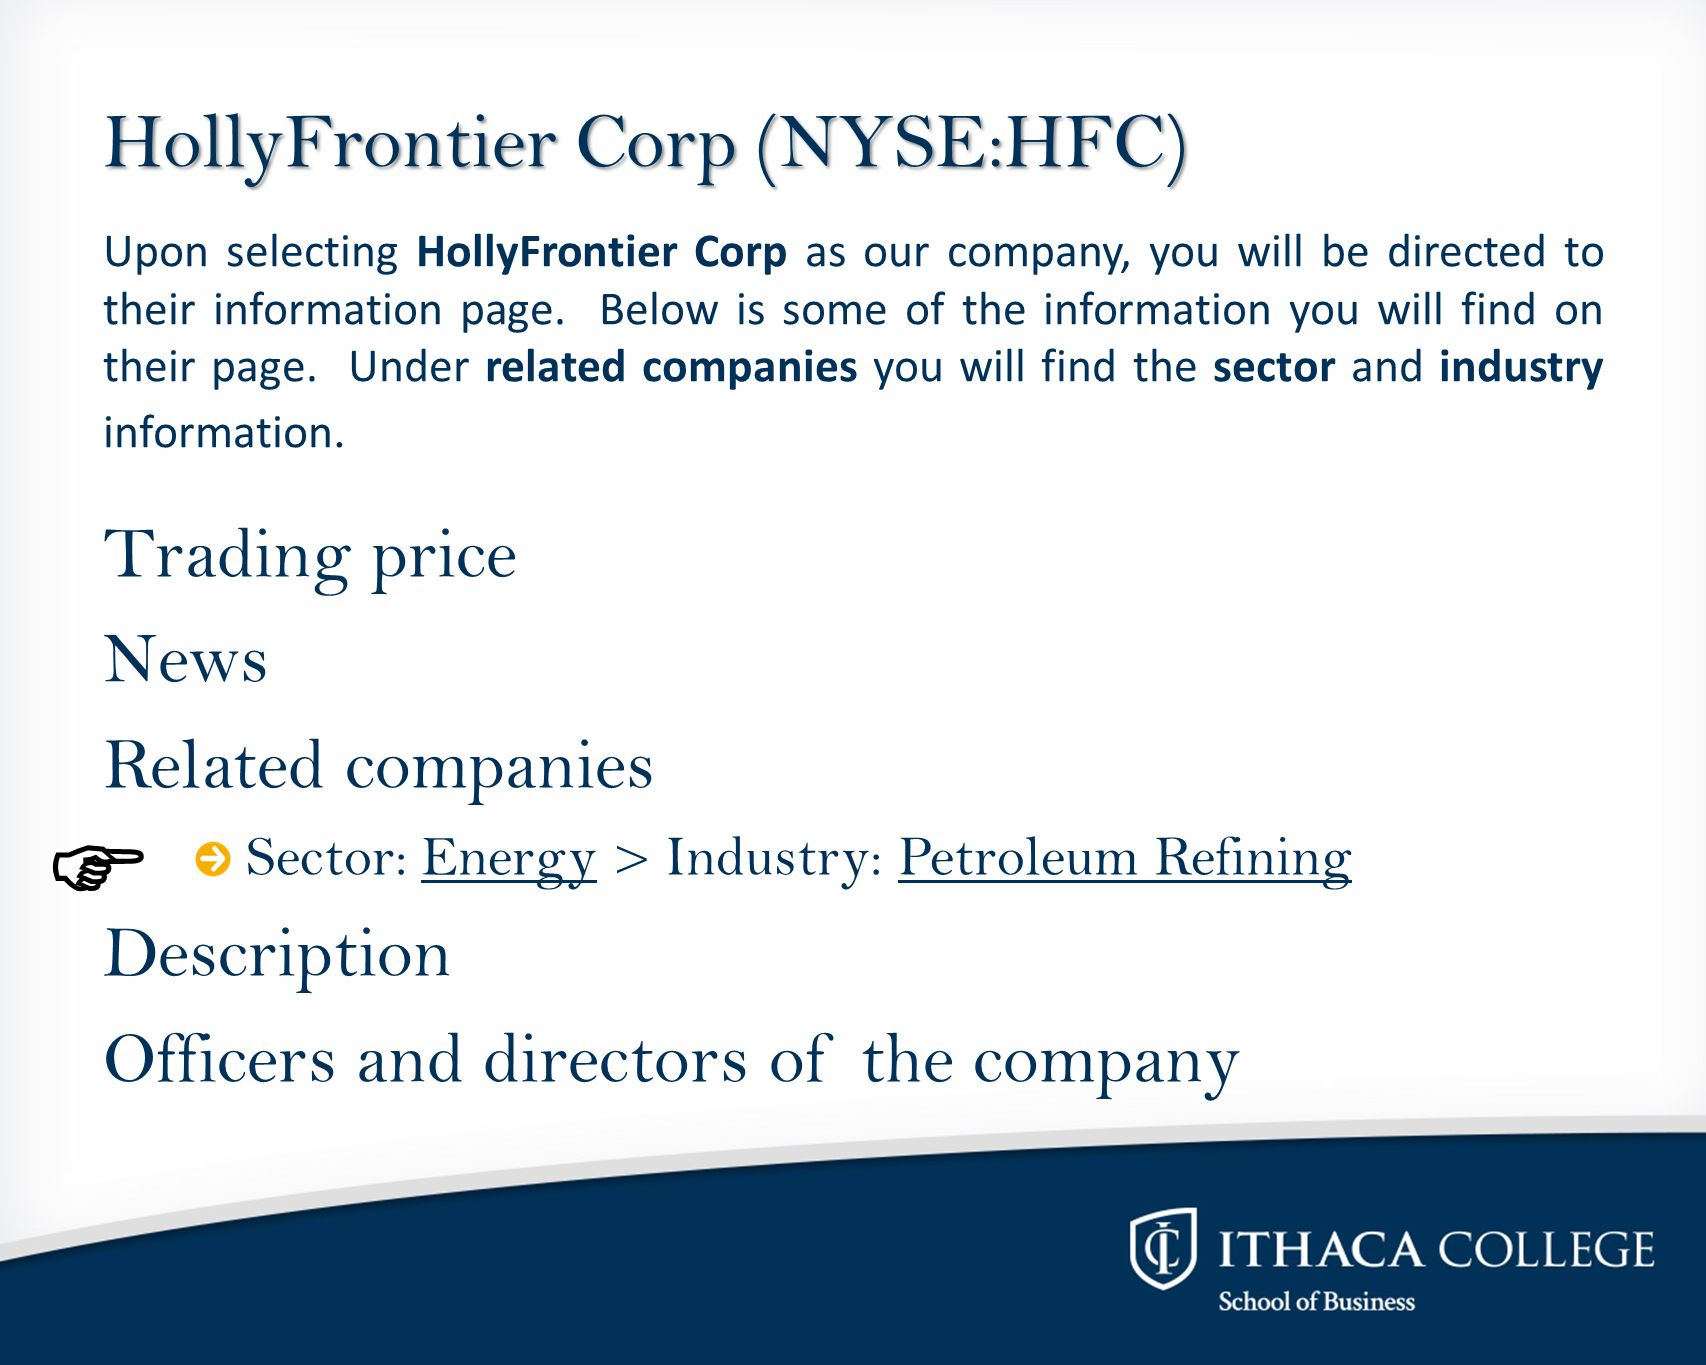 HollyFrontier Corp (NYSE:HFC) Trading price News Related companies Sector: Energy > Industry: Petroleum RefiningEnergyPetroleum Refining Description Officers and directors of the company Upon selecting HollyFrontier Corp as our company, you will be directed to their information page.